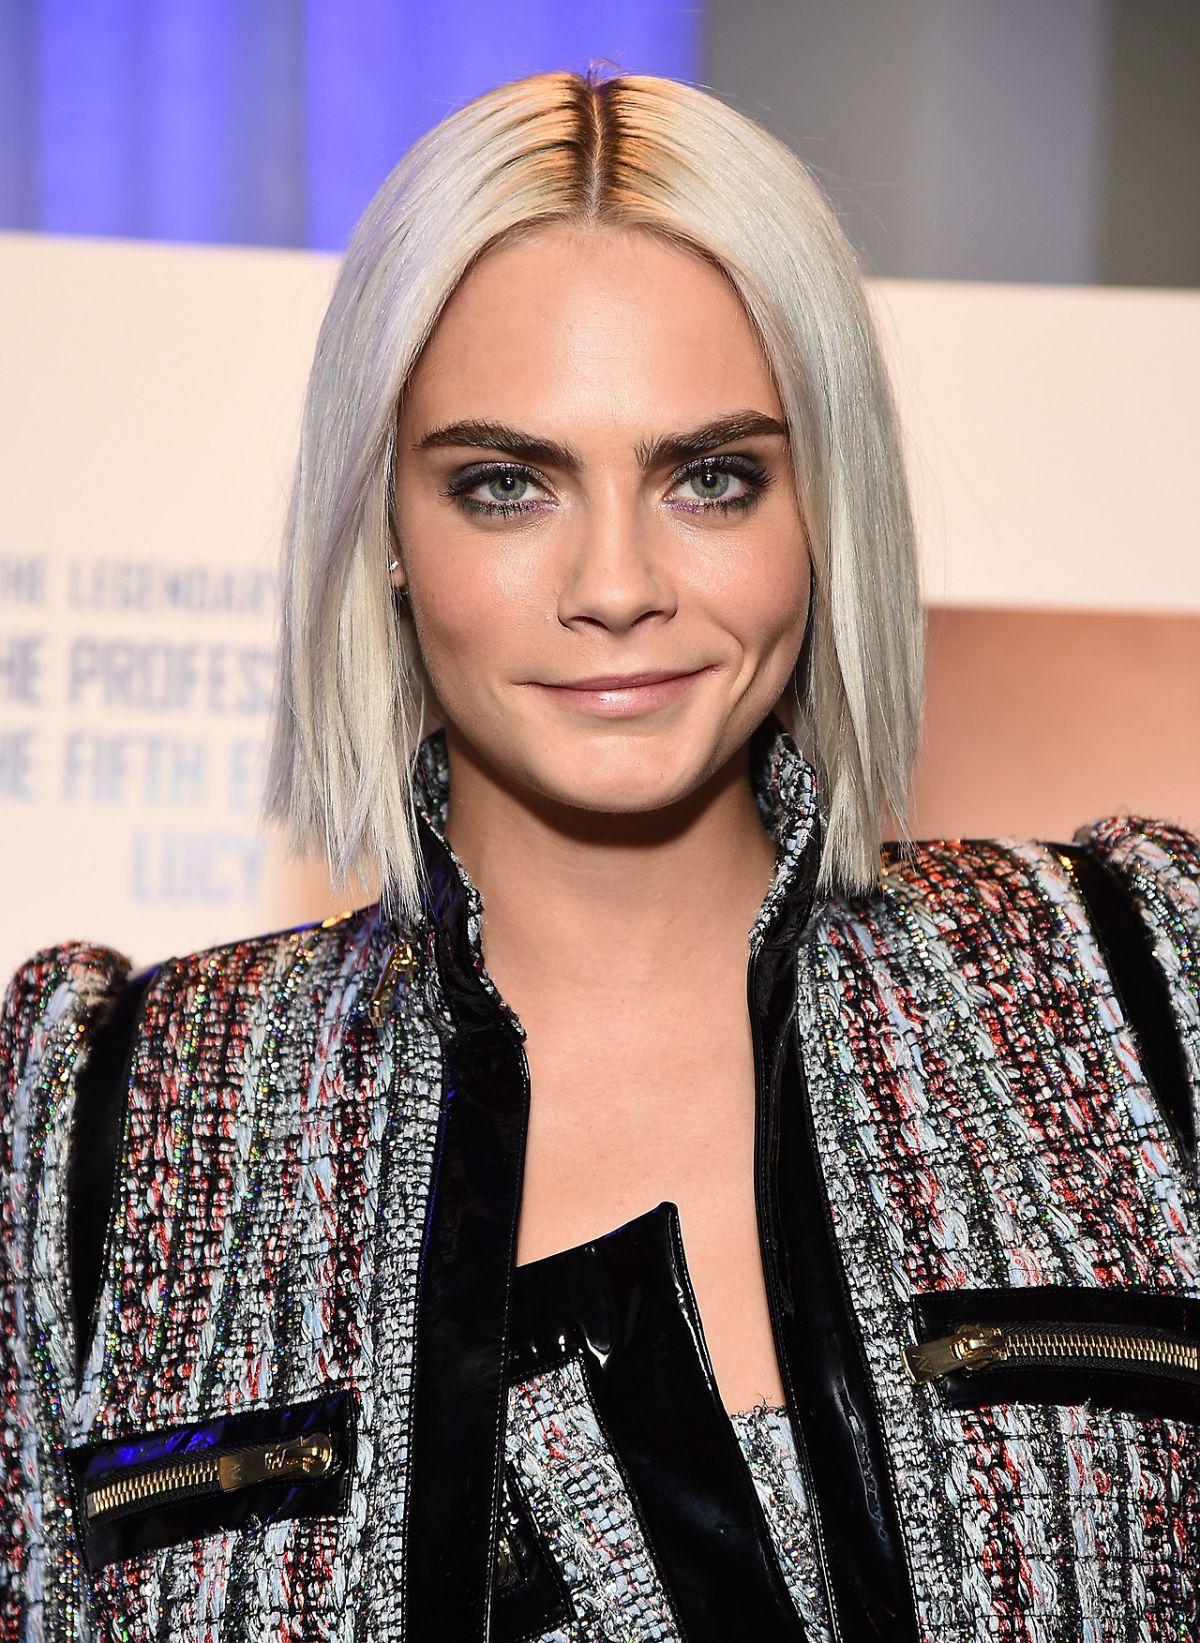 Cara Delevingne mid part bob hairstyles for 2018